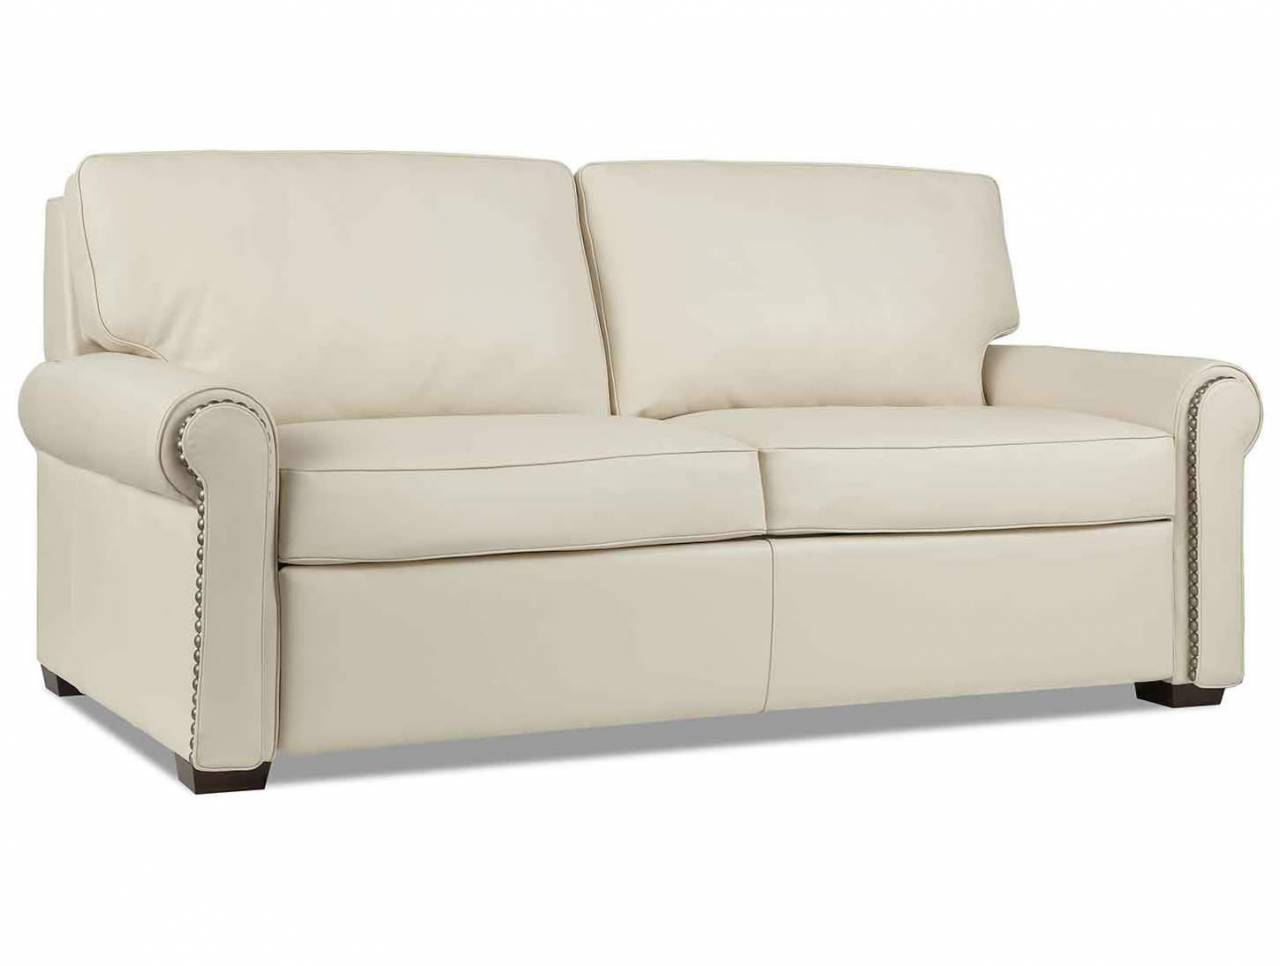 Comfortable Den Furniture Reese Sleeper Sofa Sofas And Chairs Of Minnesota